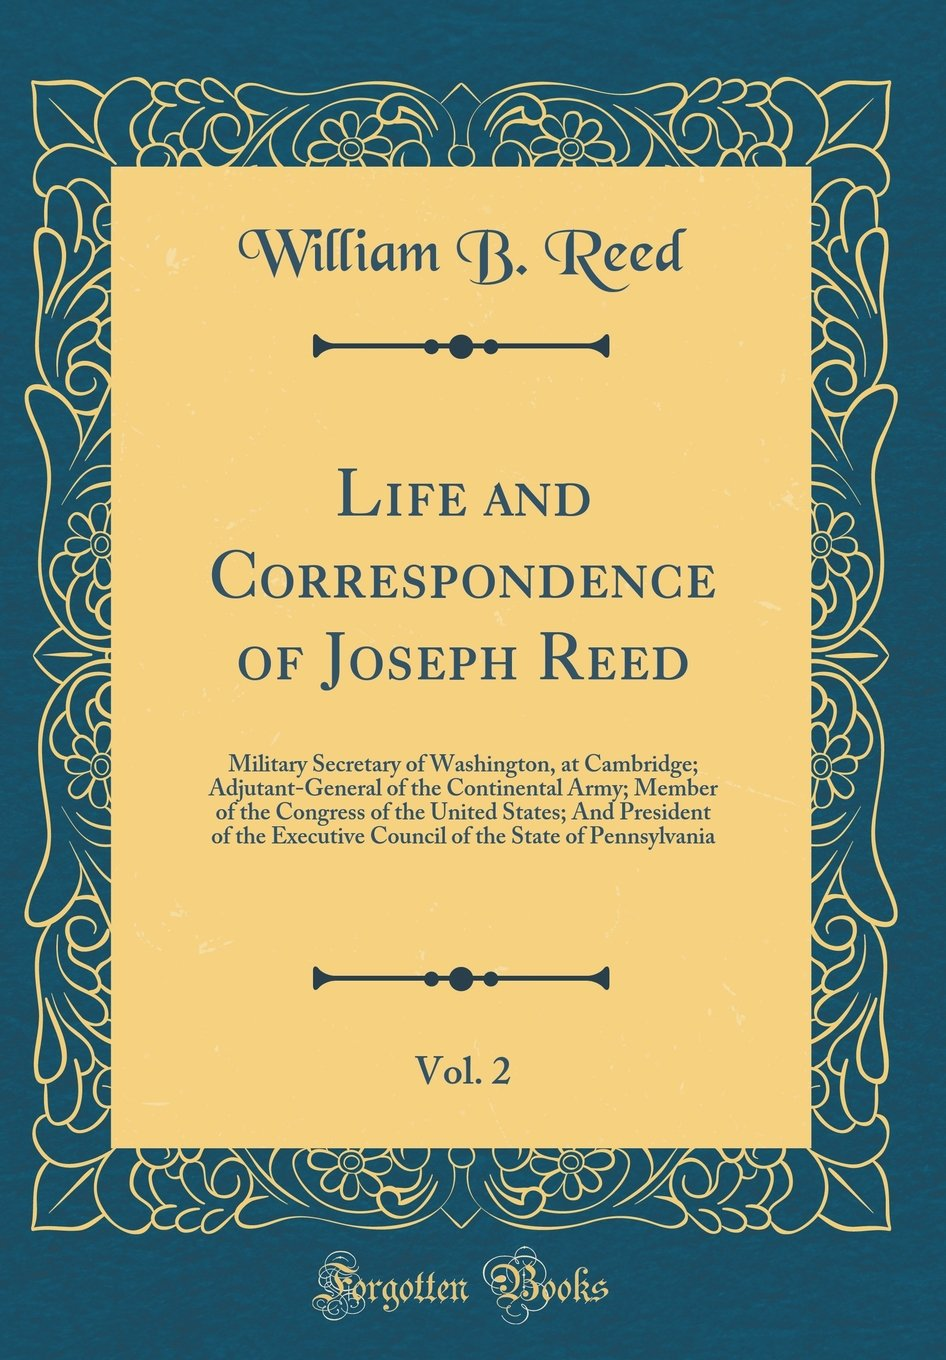 Life and Correspondence of Joseph Reed, Vol. 2: Military Secretary of Washington, at Cambridge; Adjutant-General of the Continental Army; Member of Council of the State of Pennsylvania